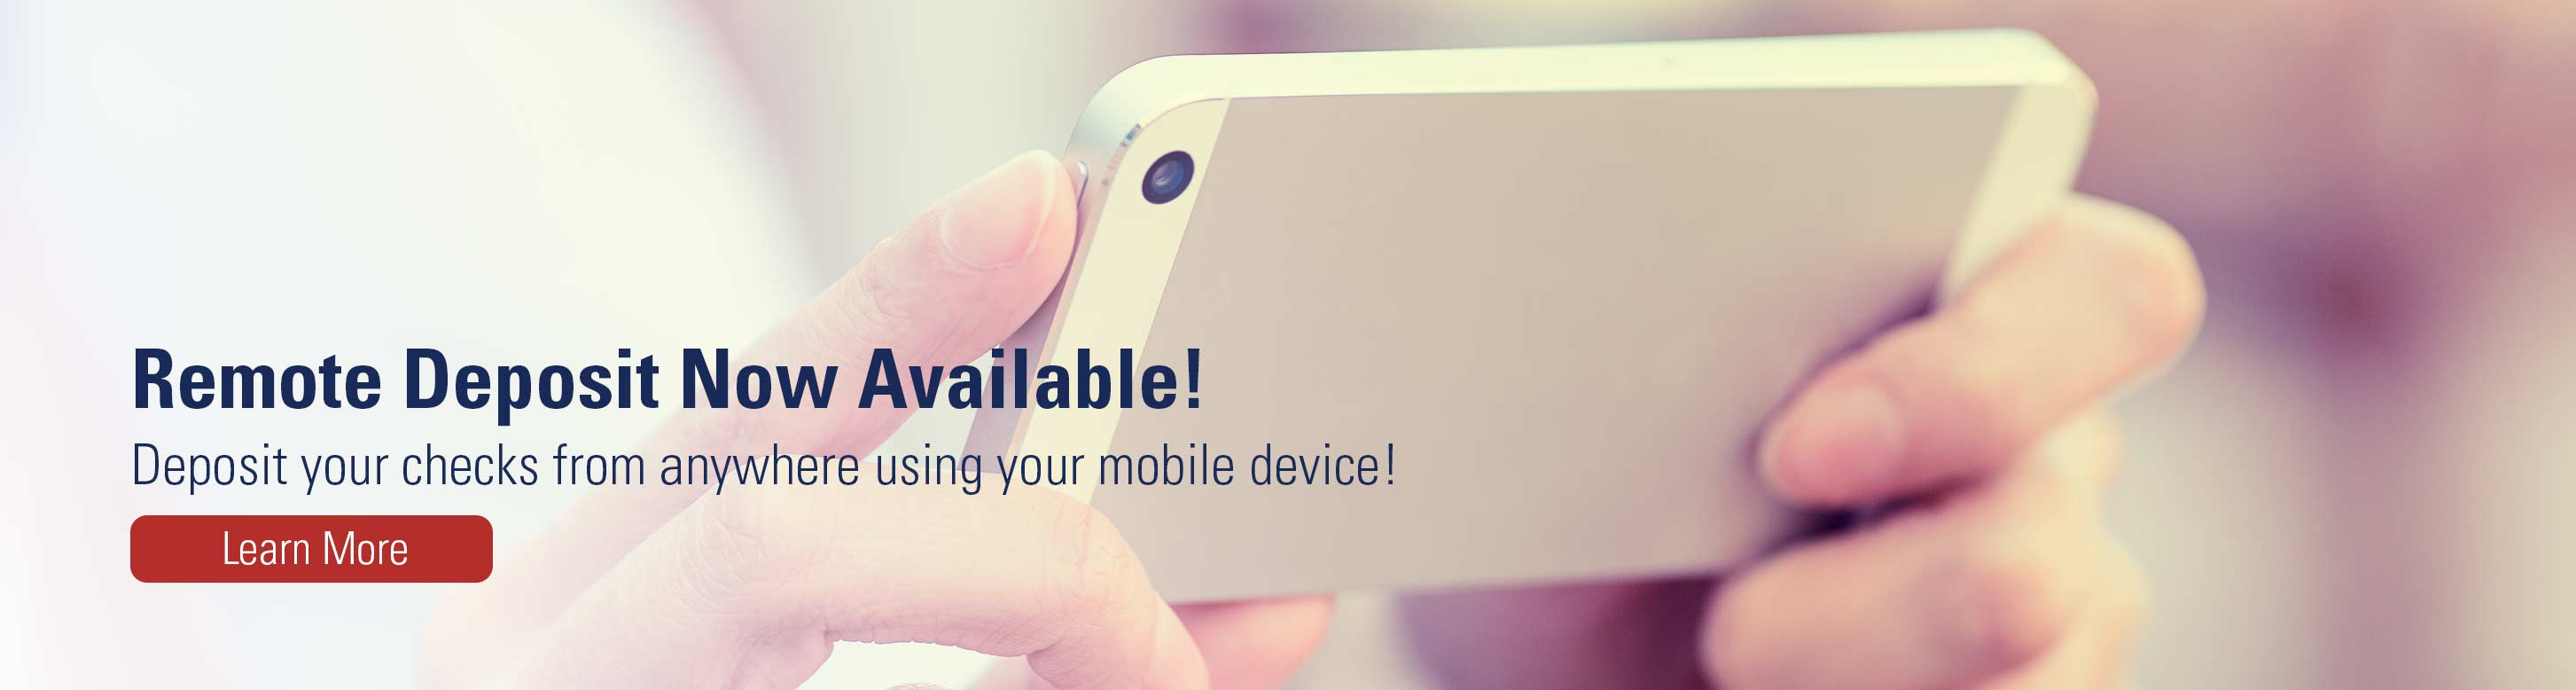 Remote deposit now available! Deposit your checks from anywhere using your mobile device! Learn more.